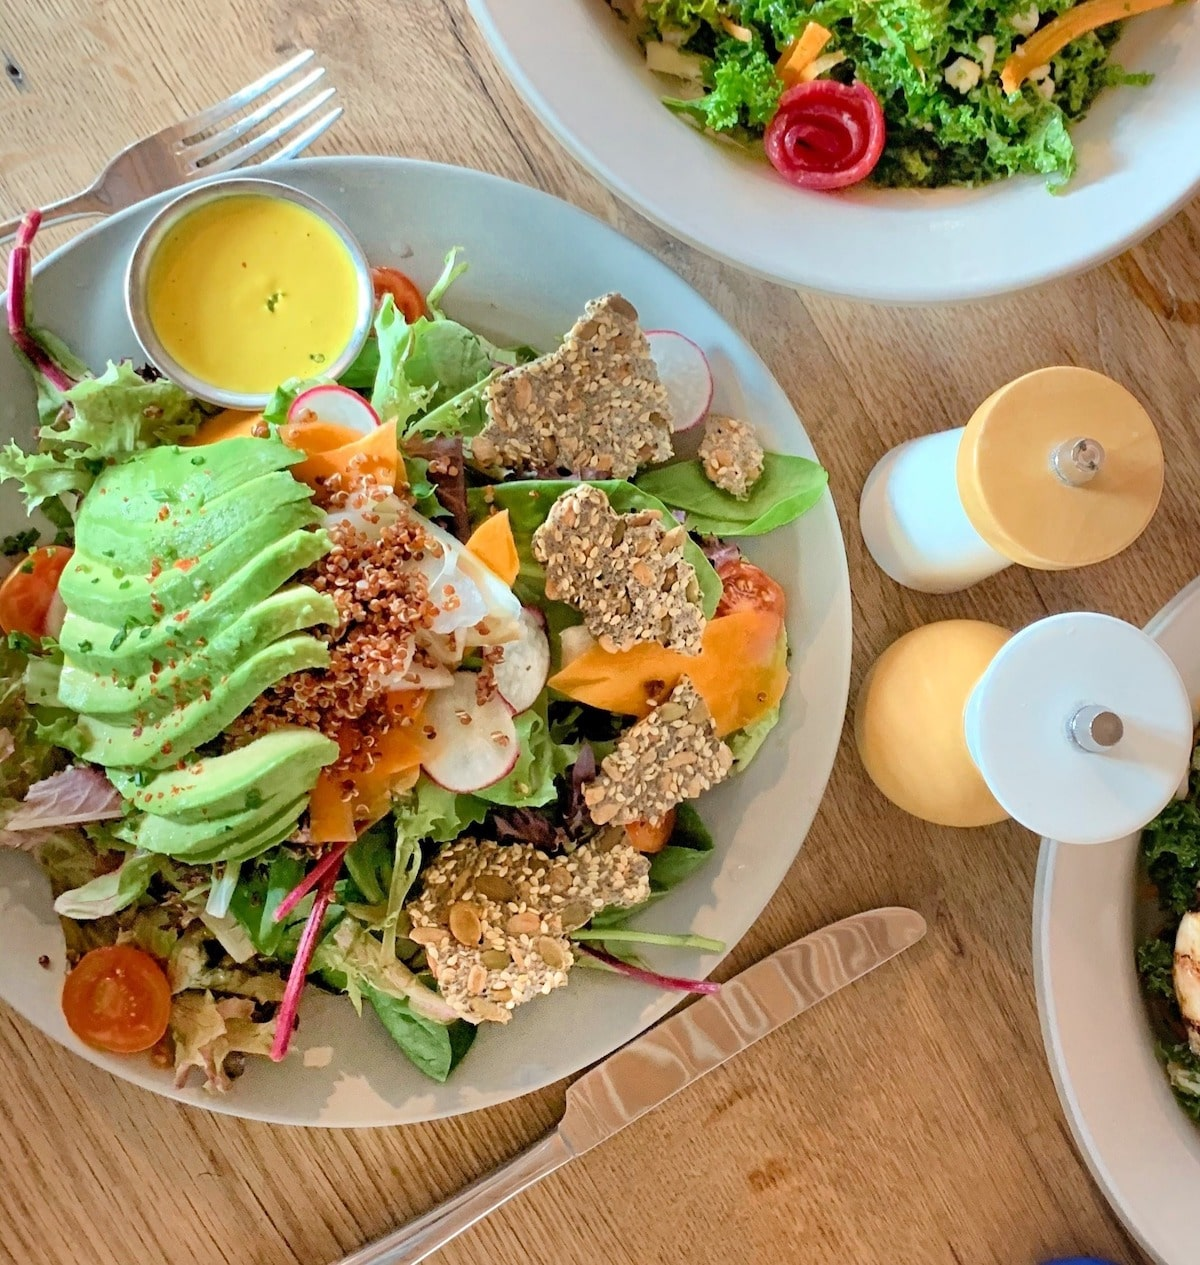 Healthy food choice at restaurant - salad on a gray plater with lettuce, avocado, crackers, and yellow dressing.